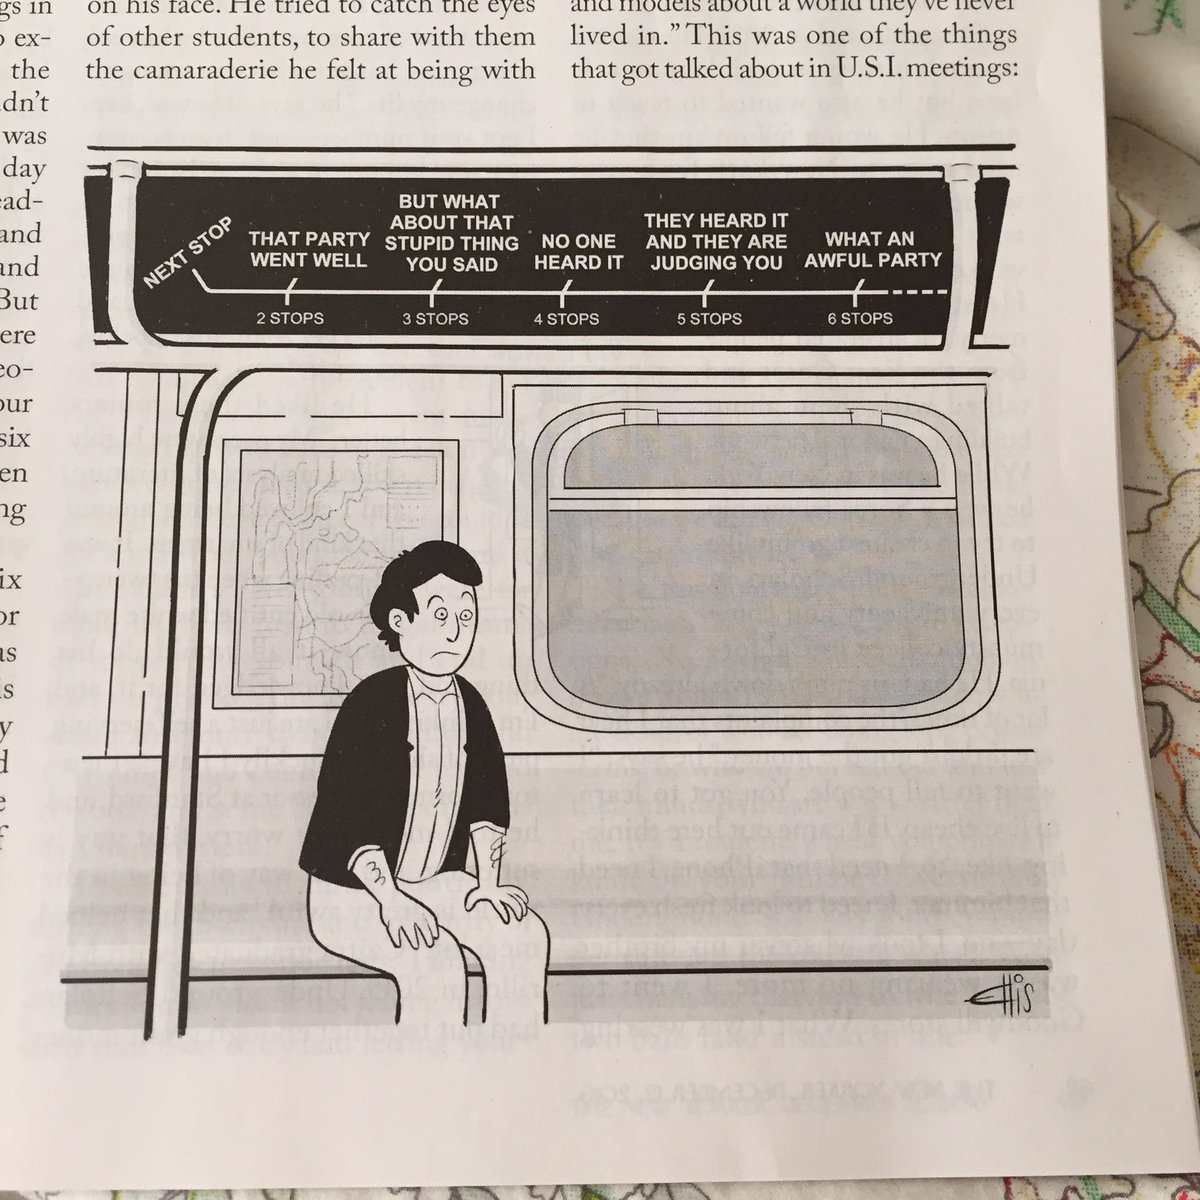 I have never related to a cartoon more than I relate to this one in the new issue of the New Yorker. https://t.co/pJe6pqbVo5